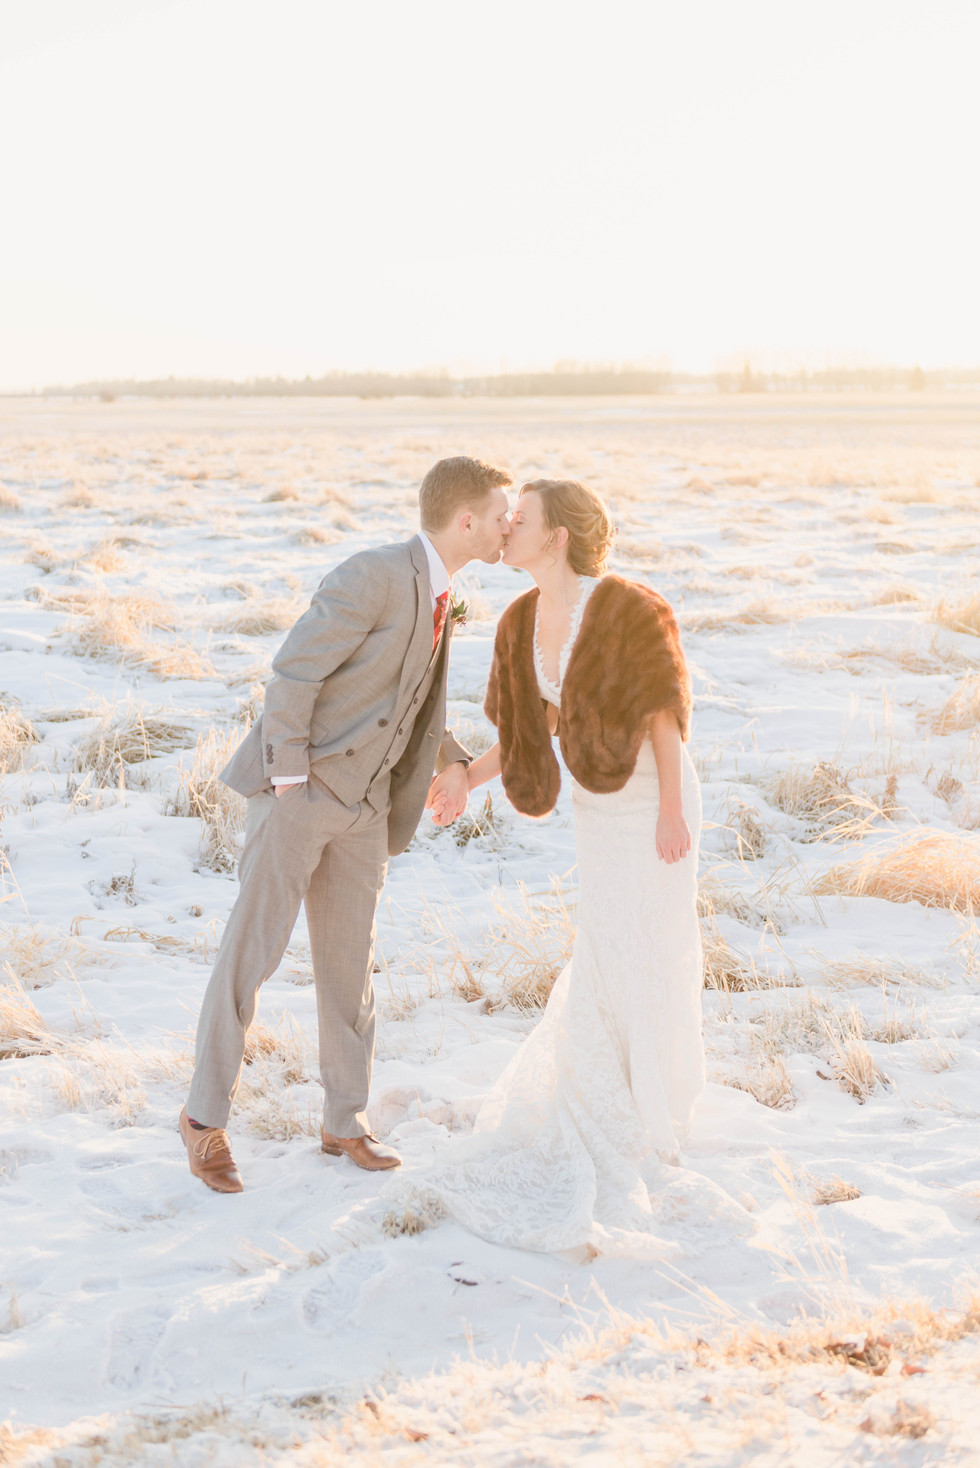 Barrhead and Neerlandia Wedding - Barrhead, AB - Kevin & Jen